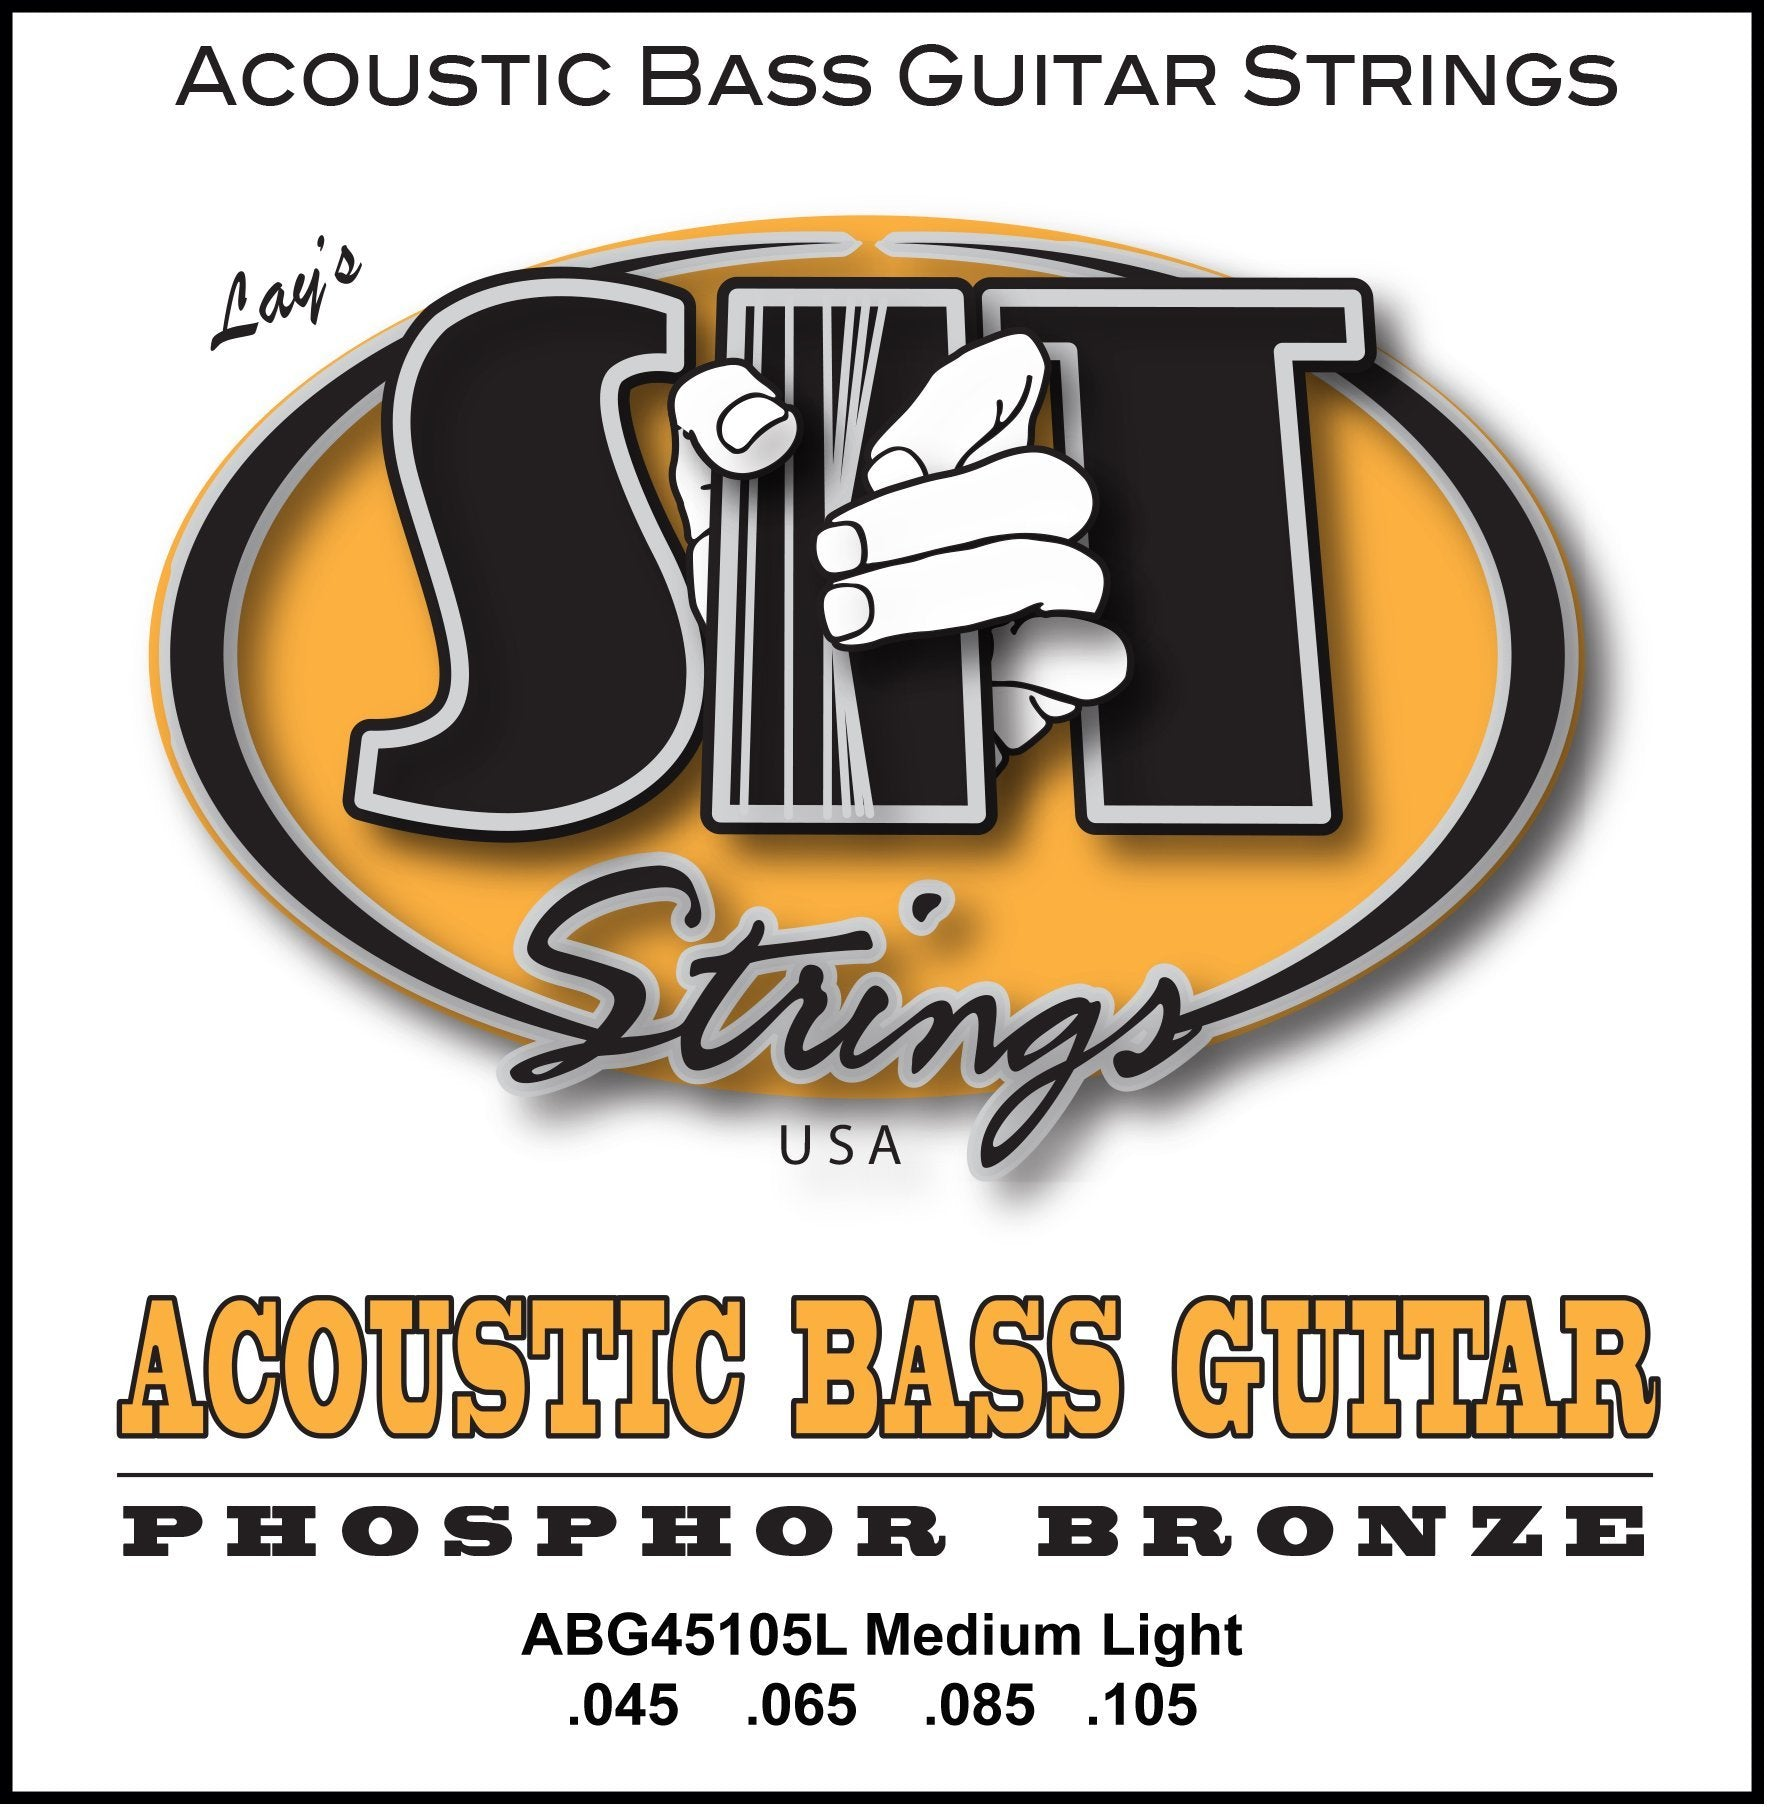 ABG45105L MEDIUM-LIGHT ACOUSTIC PHOSPHOR BRONZE BASS SIT STRING SIT - HIENDGUITAR.COM